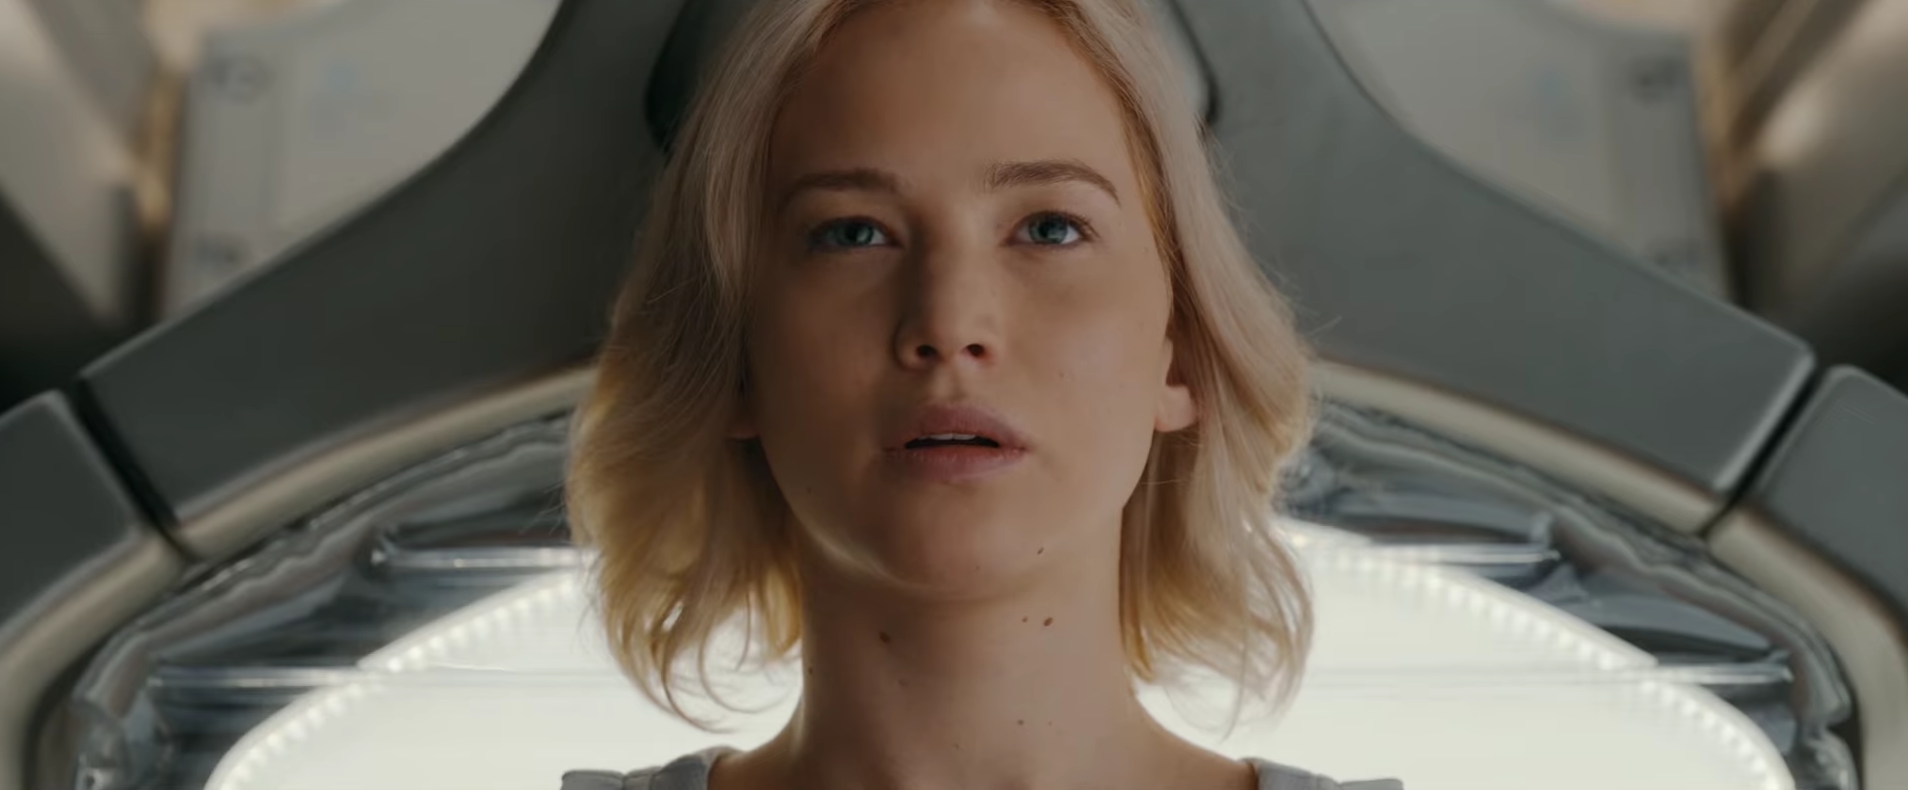 Passengers screengrab